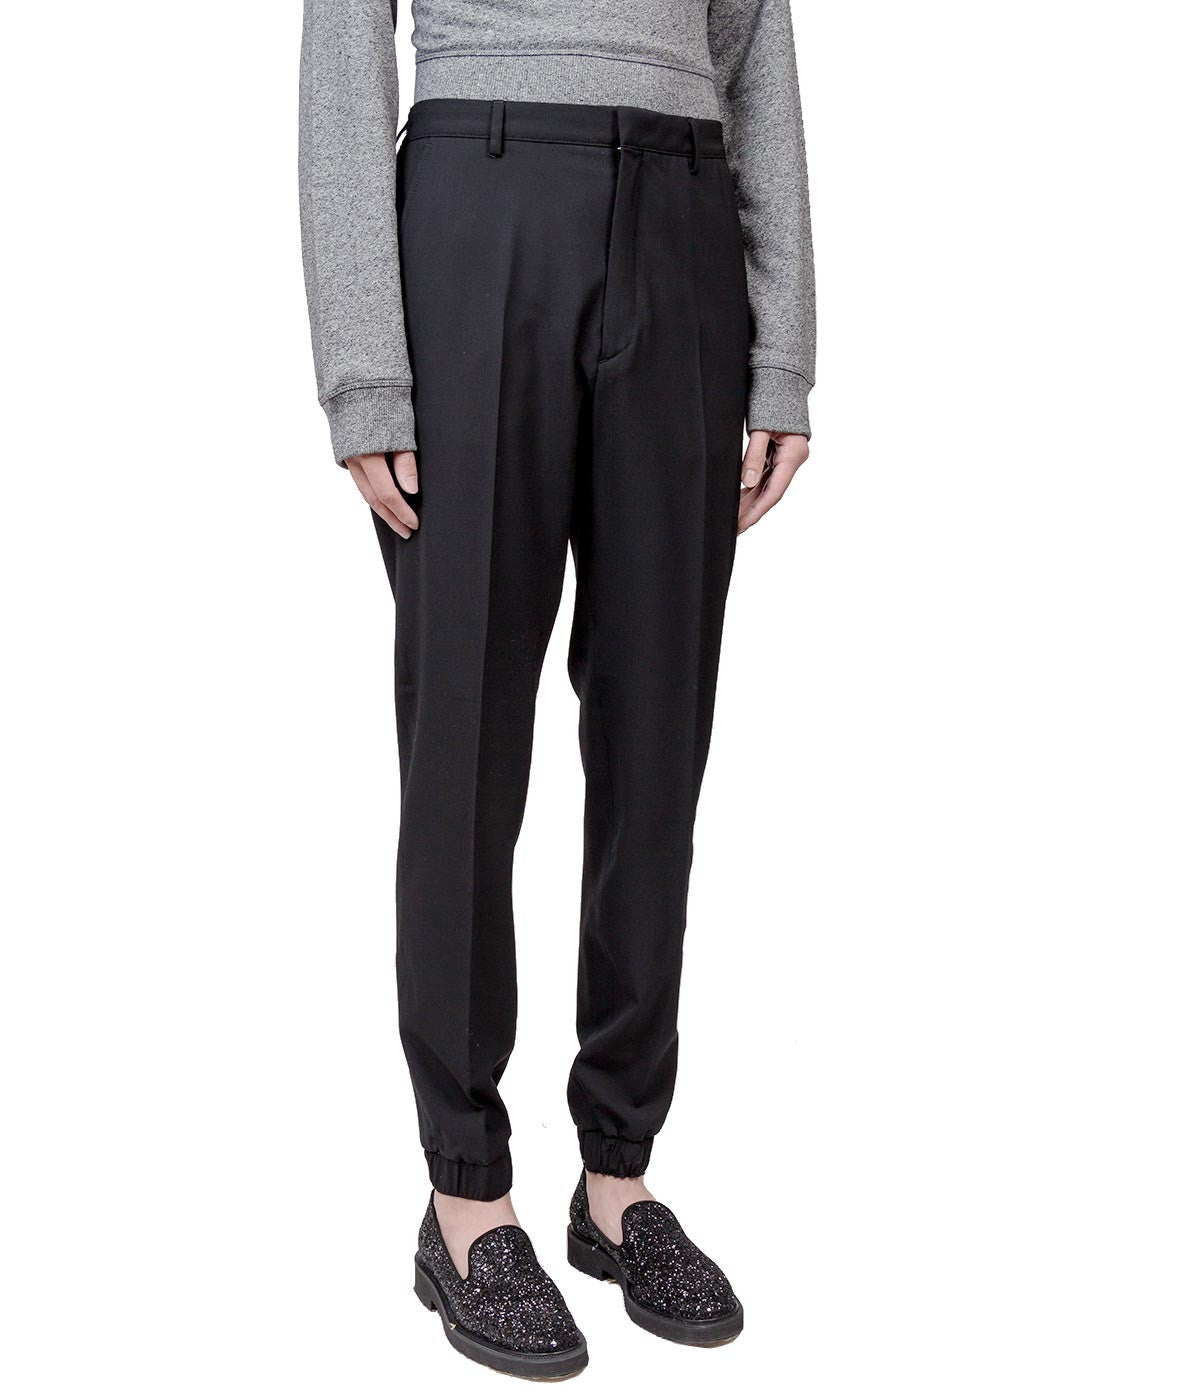 Black Wool Elastic Pants